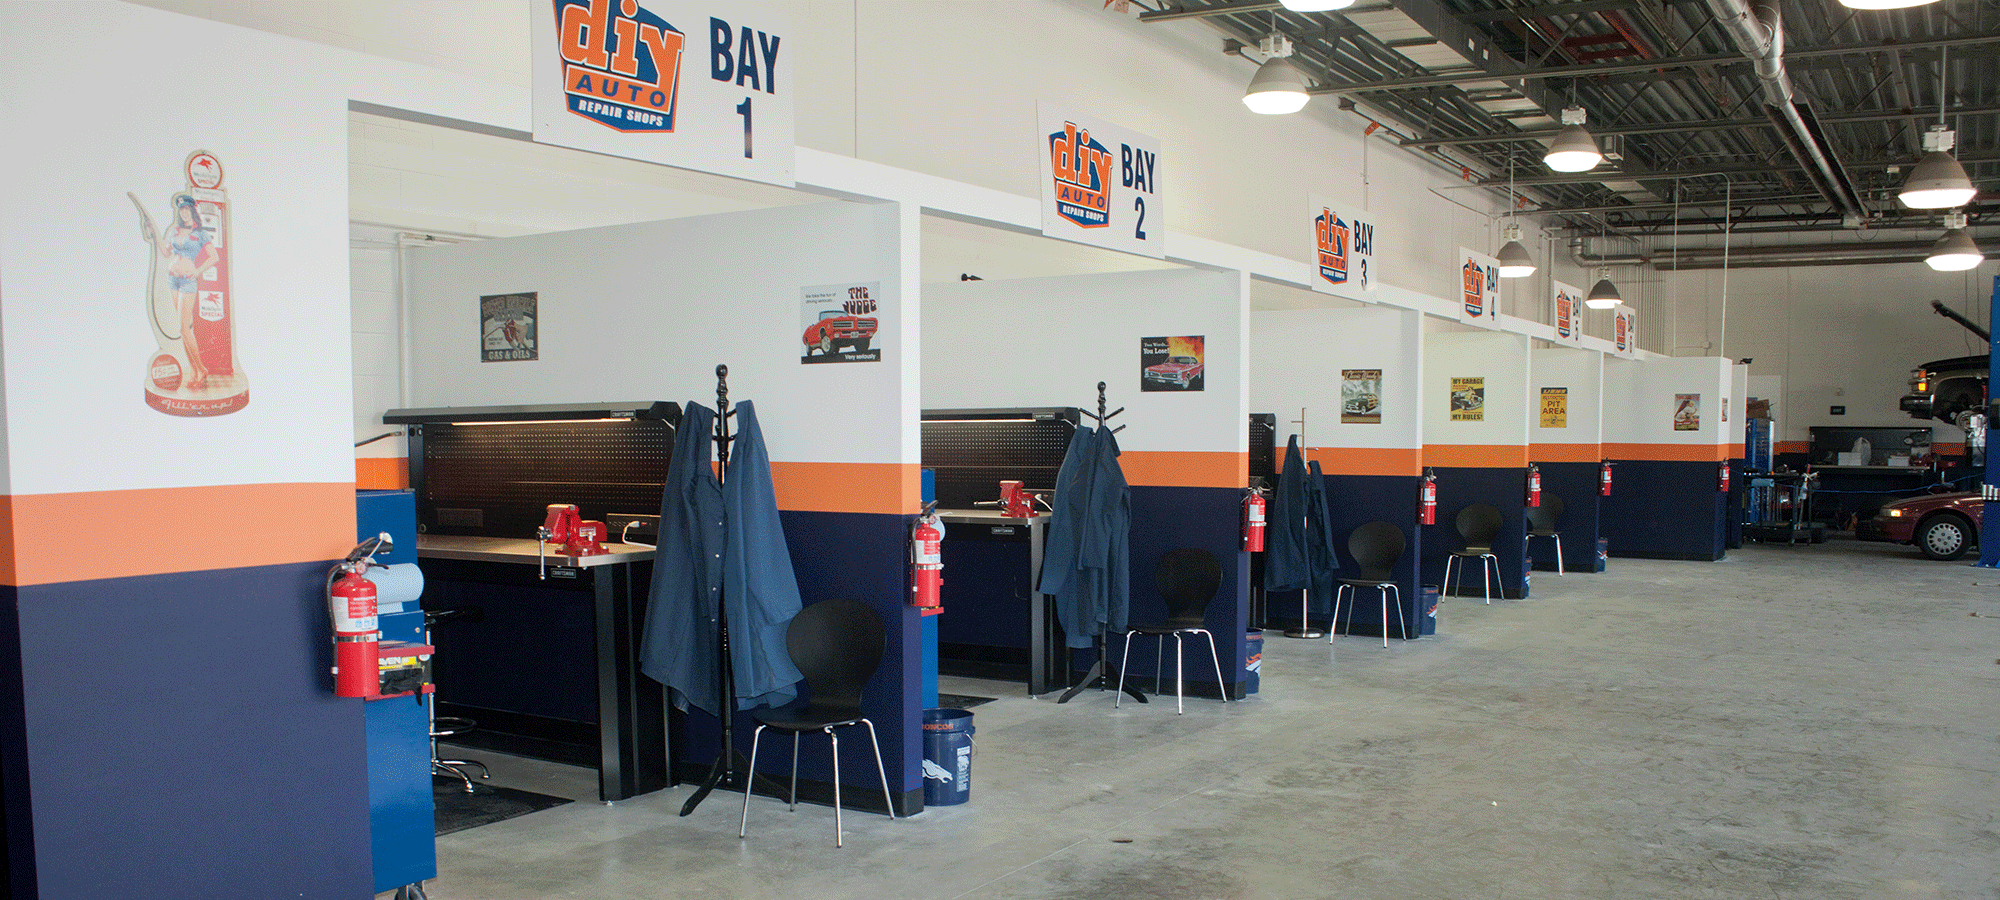 Diy auto repair shops equipped self service garage bays open weekends solutioingenieria